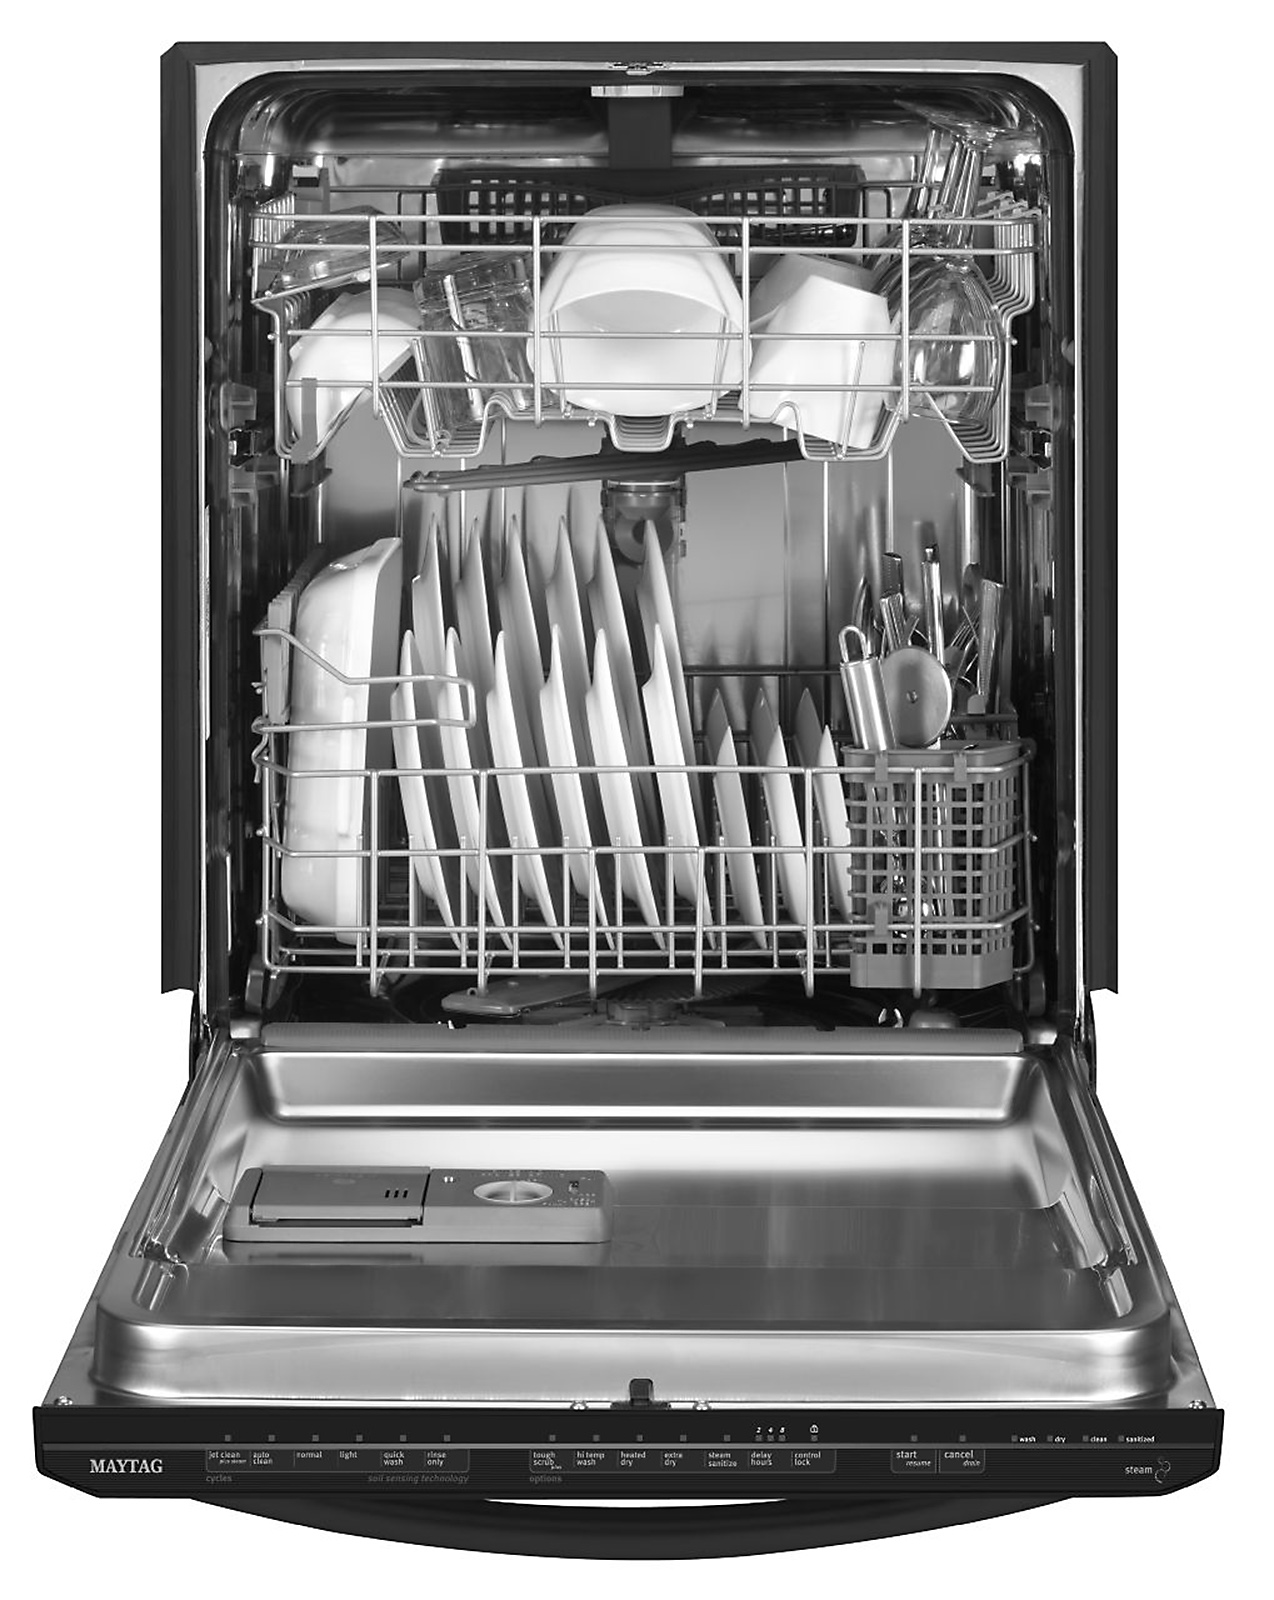 "Maytag 24"" Jetclean® Plus Built-In Dishwasher w/ Premium Rack Glides - Stainless Steel"